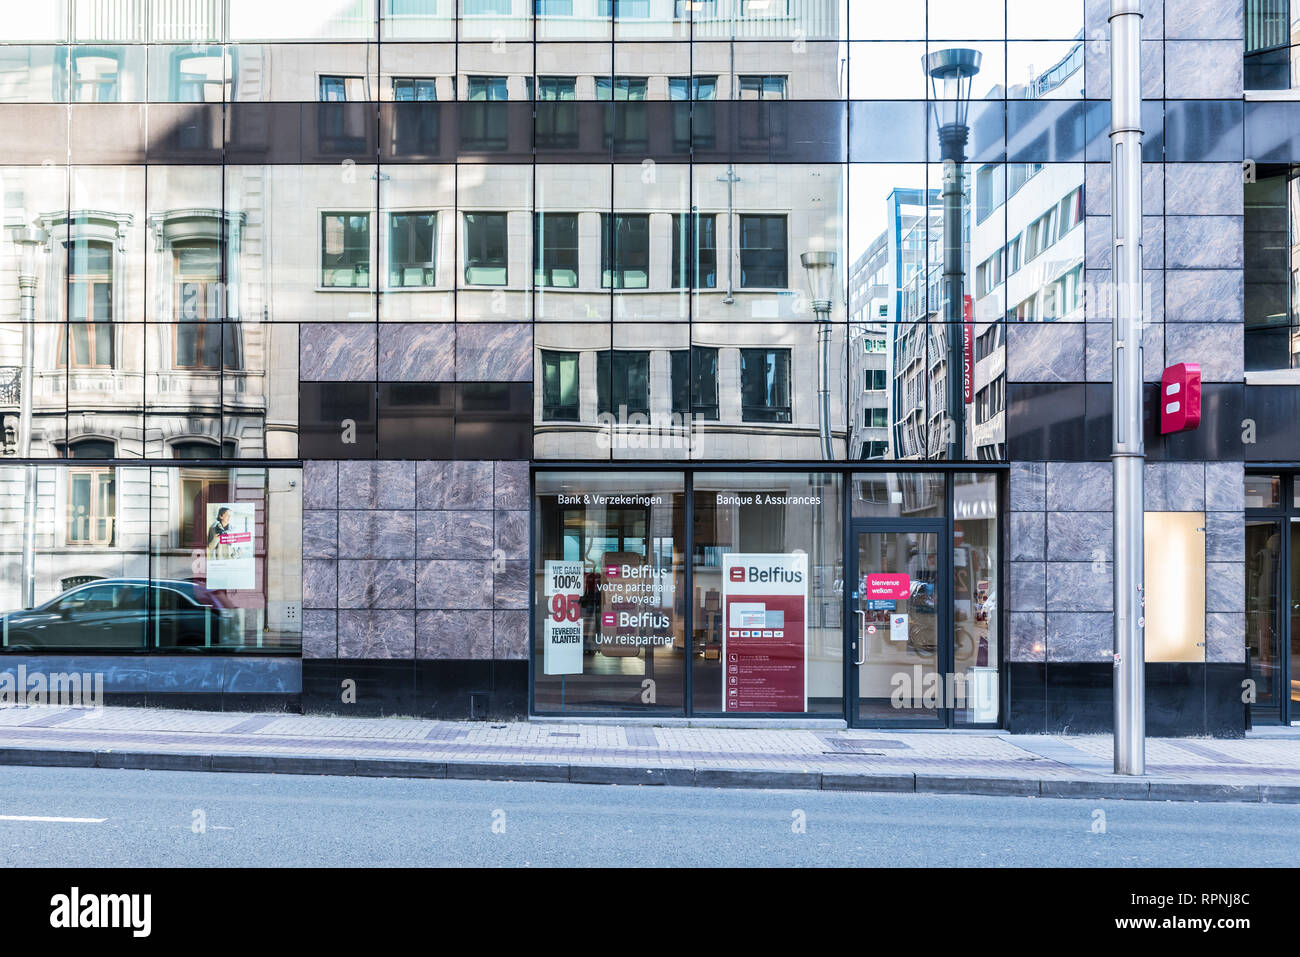 City of Brussels / Belgium - 02 15 2019: Facade of a large Belfius banking and insurance agency with steel and glass, reflecting the oppositie side of - Stock Image